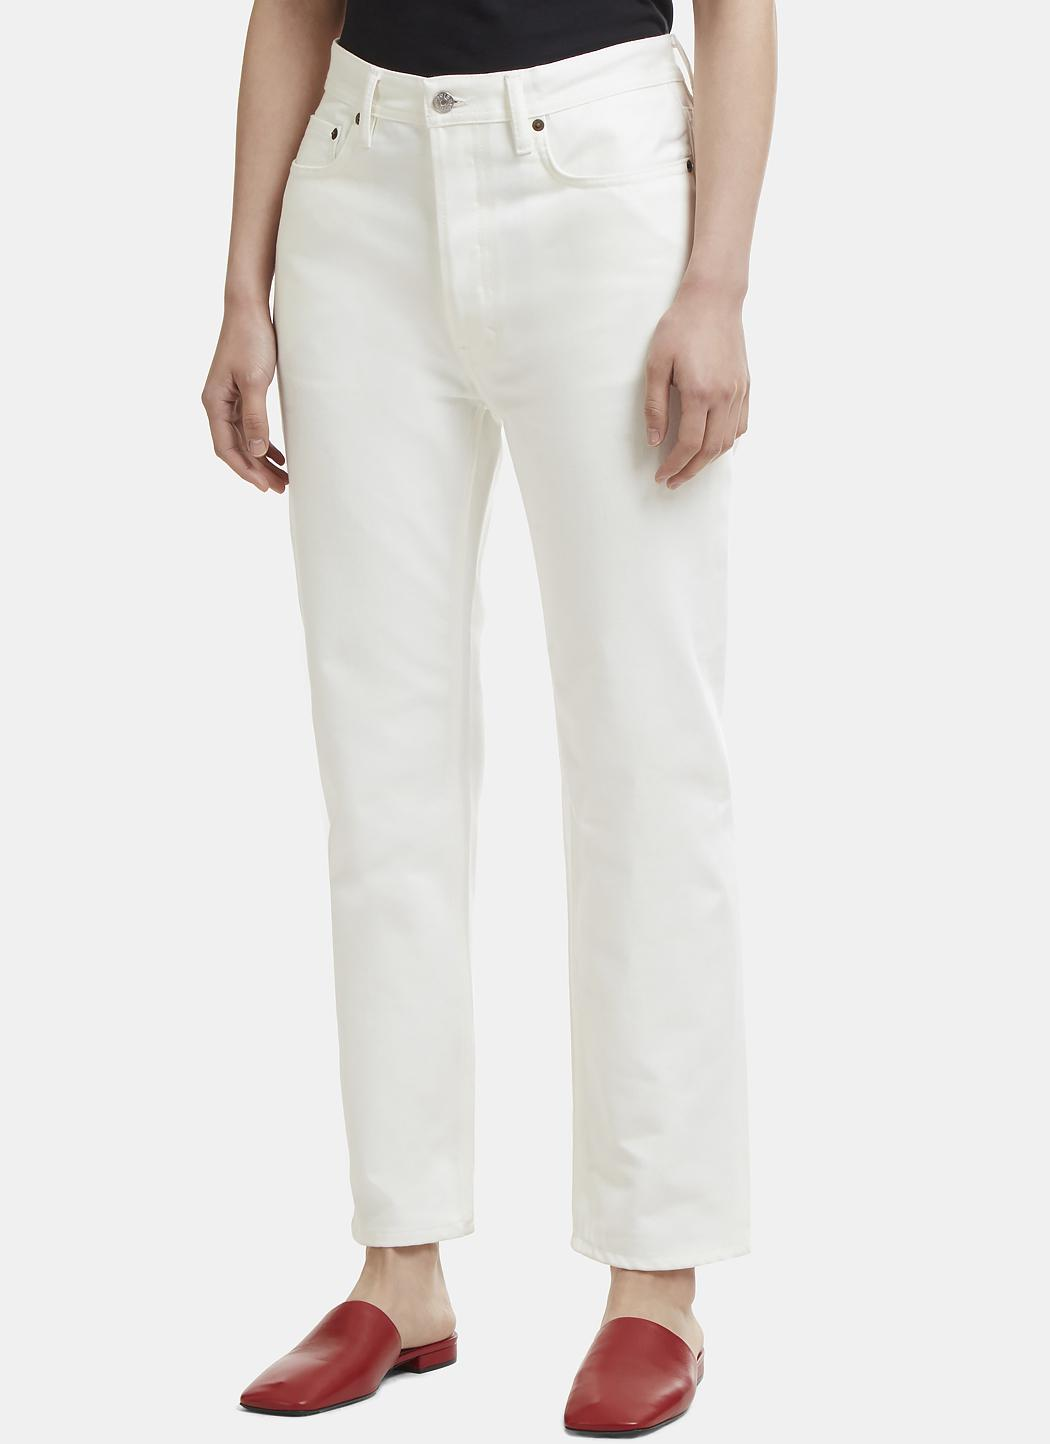 Acne - Straight Leg Jeans In White - Lyst